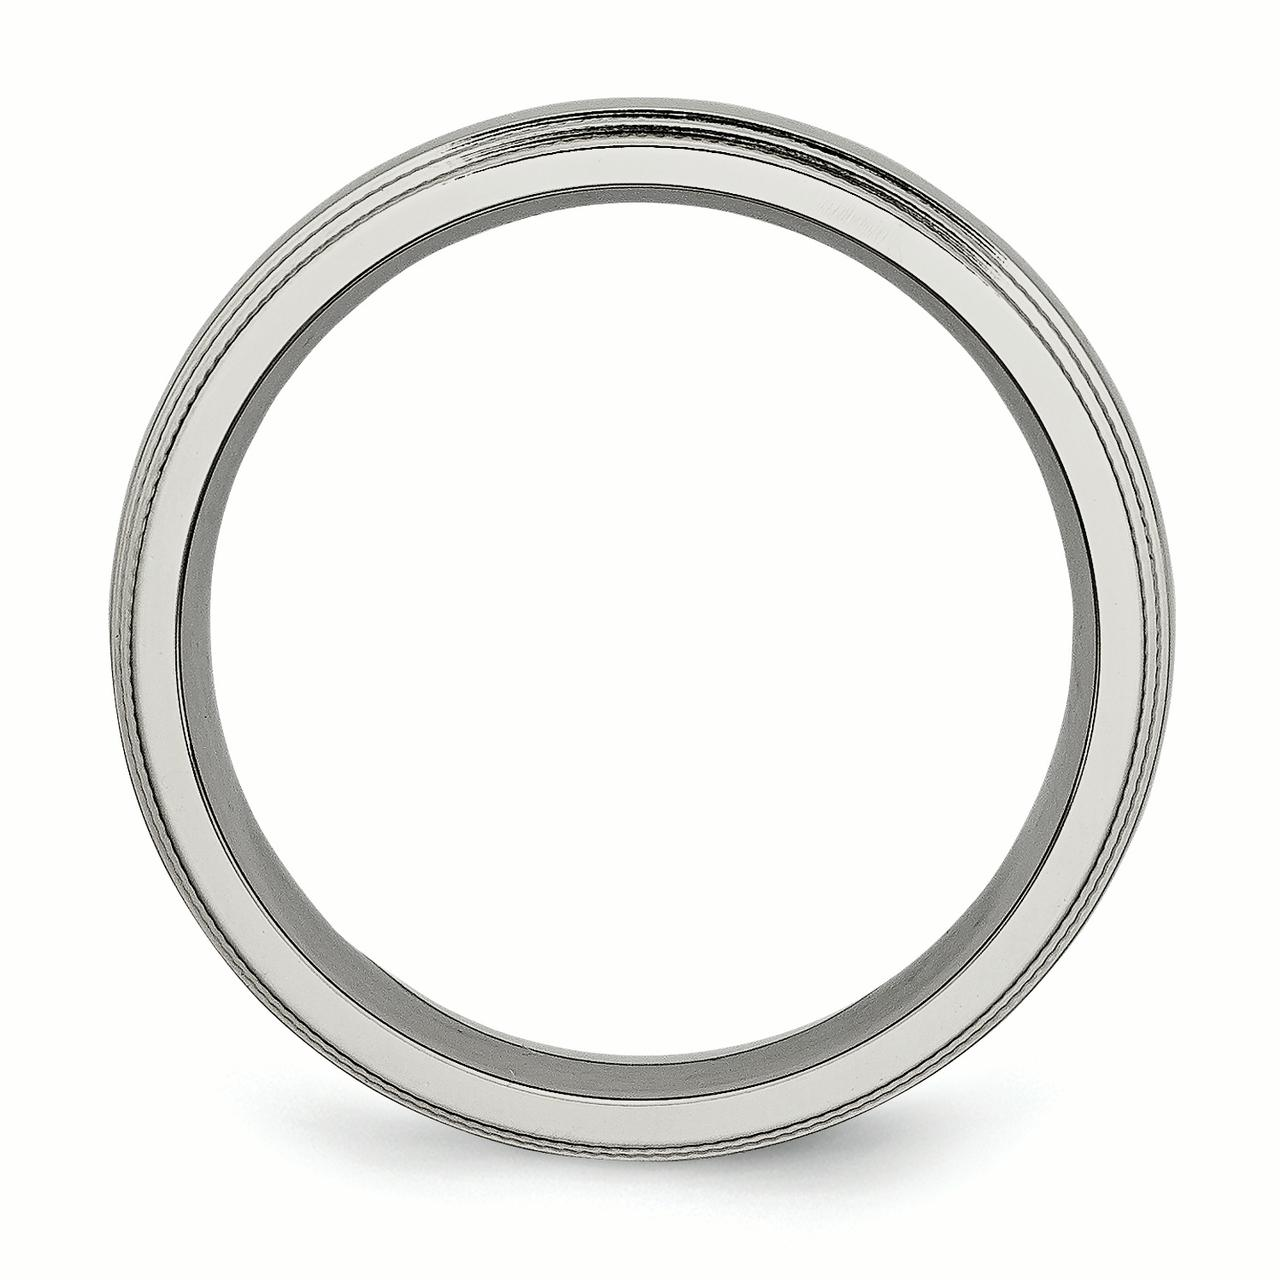 Titanium Grooved and Beaded Edge 6mm Polished Band Ring 8 Size - image 3 de 6